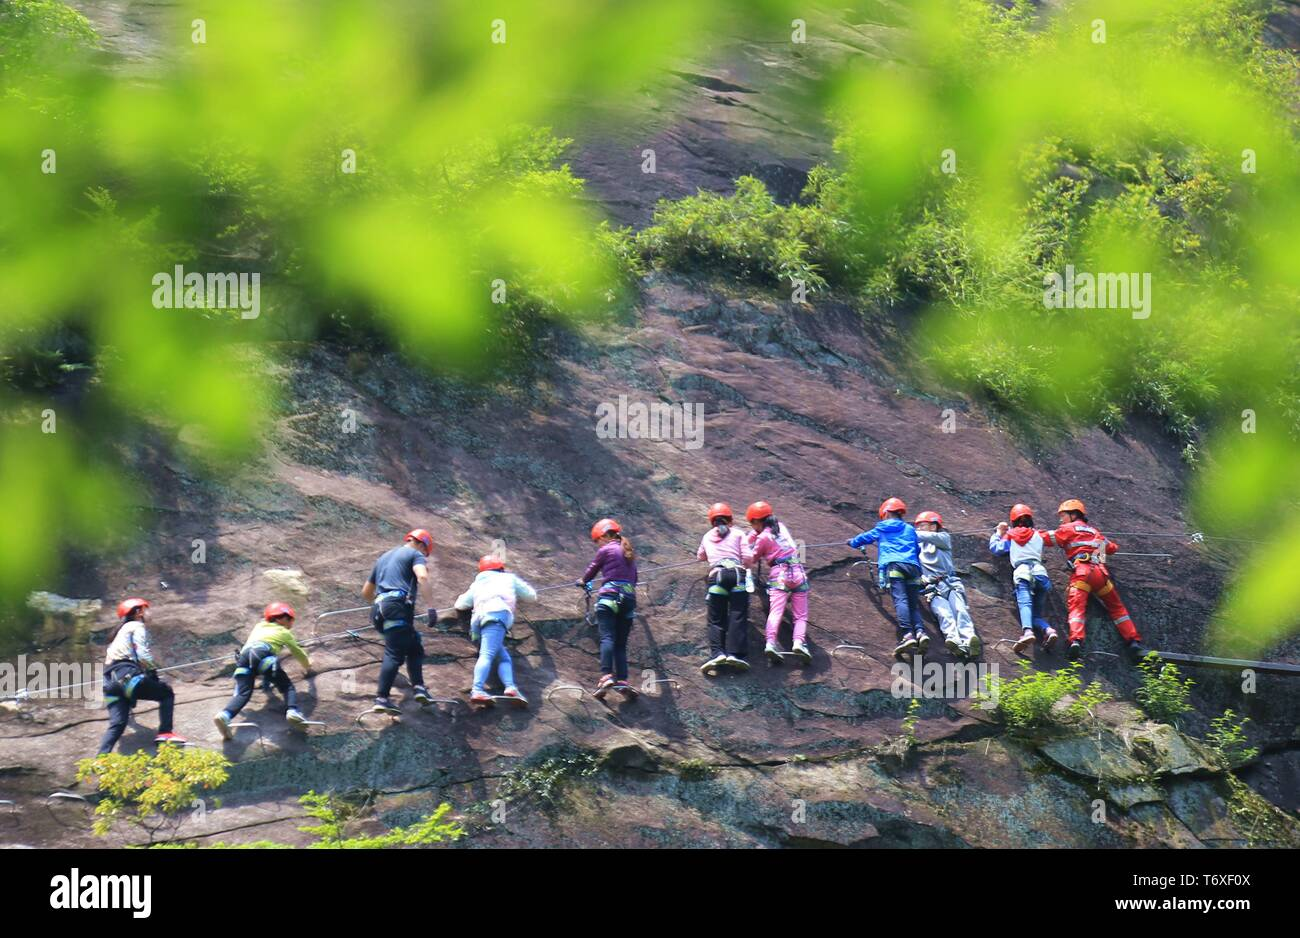 Hengyang, China's Hunan Province. 3rd May, 2019. Tourists visit the Shuilian (Water Curtain) Cave scenic area in Hengyang, central China's Hunan Province, May 3, 2019. People across China take advantage of the four-day Labor Day national holiday to get relaxed in recreational activities. Credit: Cao Zhengping/Xinhua/Alamy Live News - Stock Image